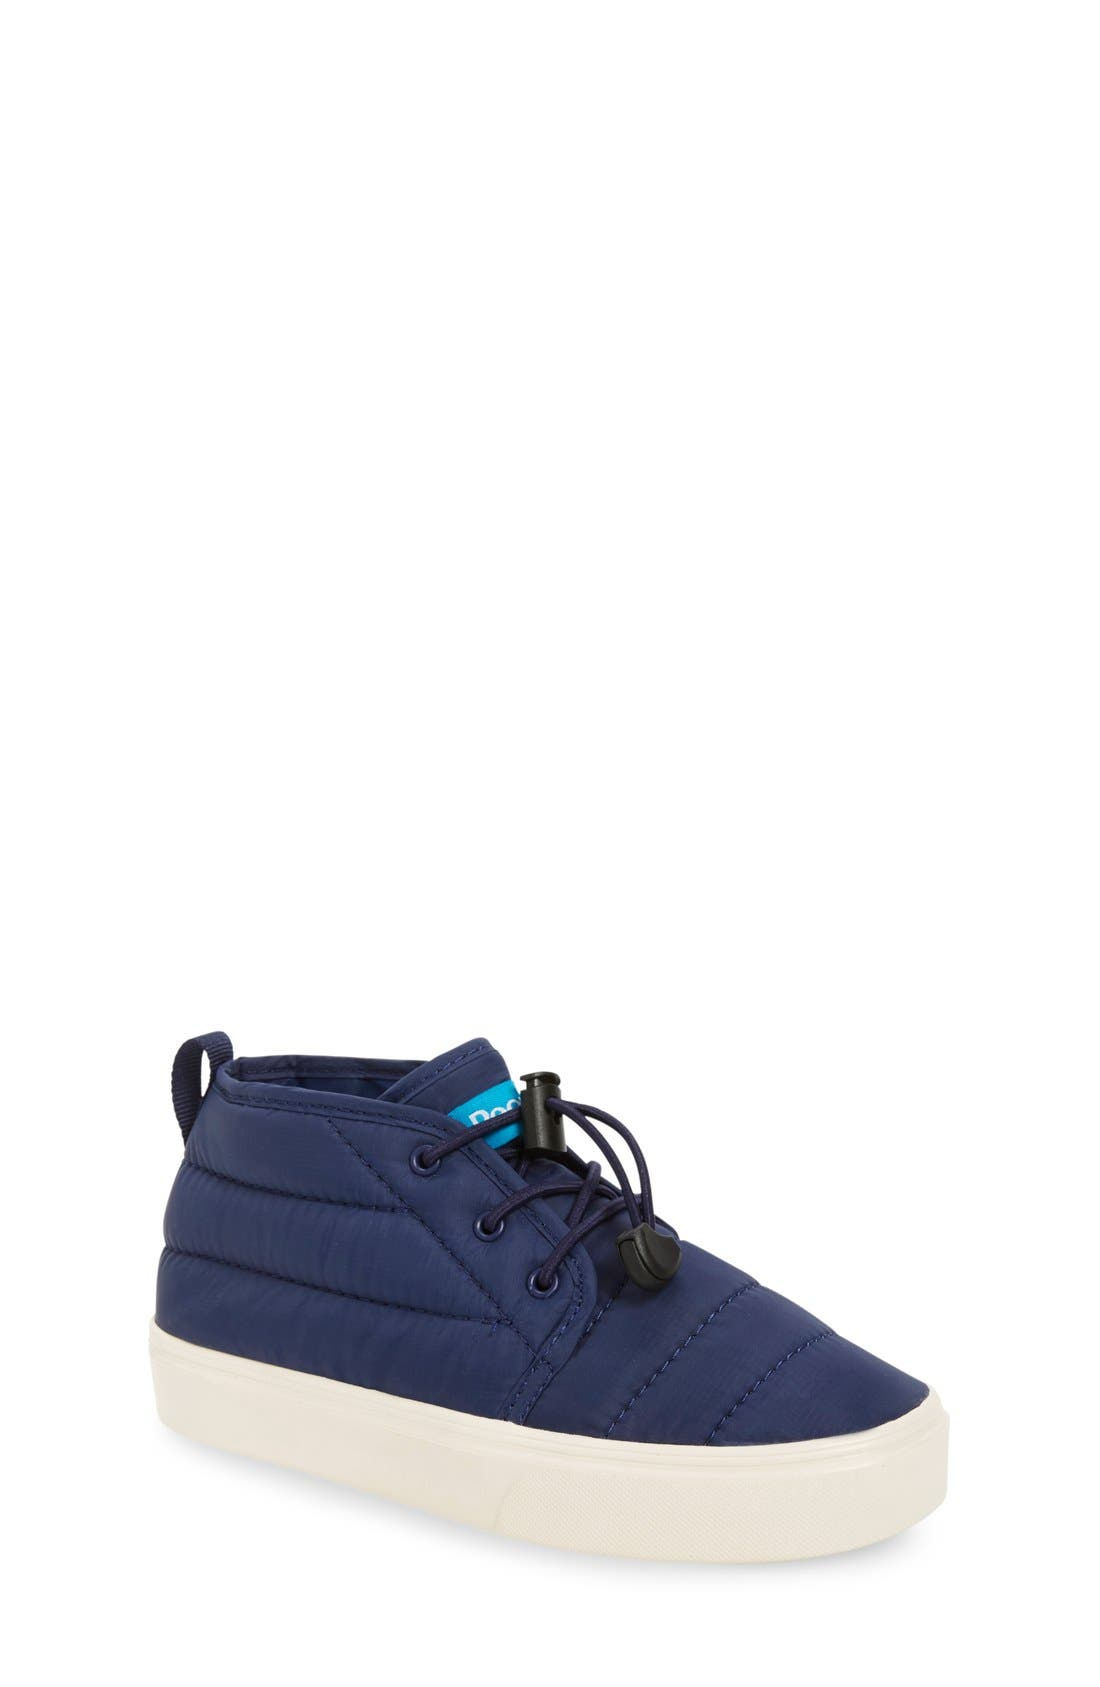 'Cypress' Sneaker,                         Main,                         color, MARINER BLUE/ PICKET WHITE